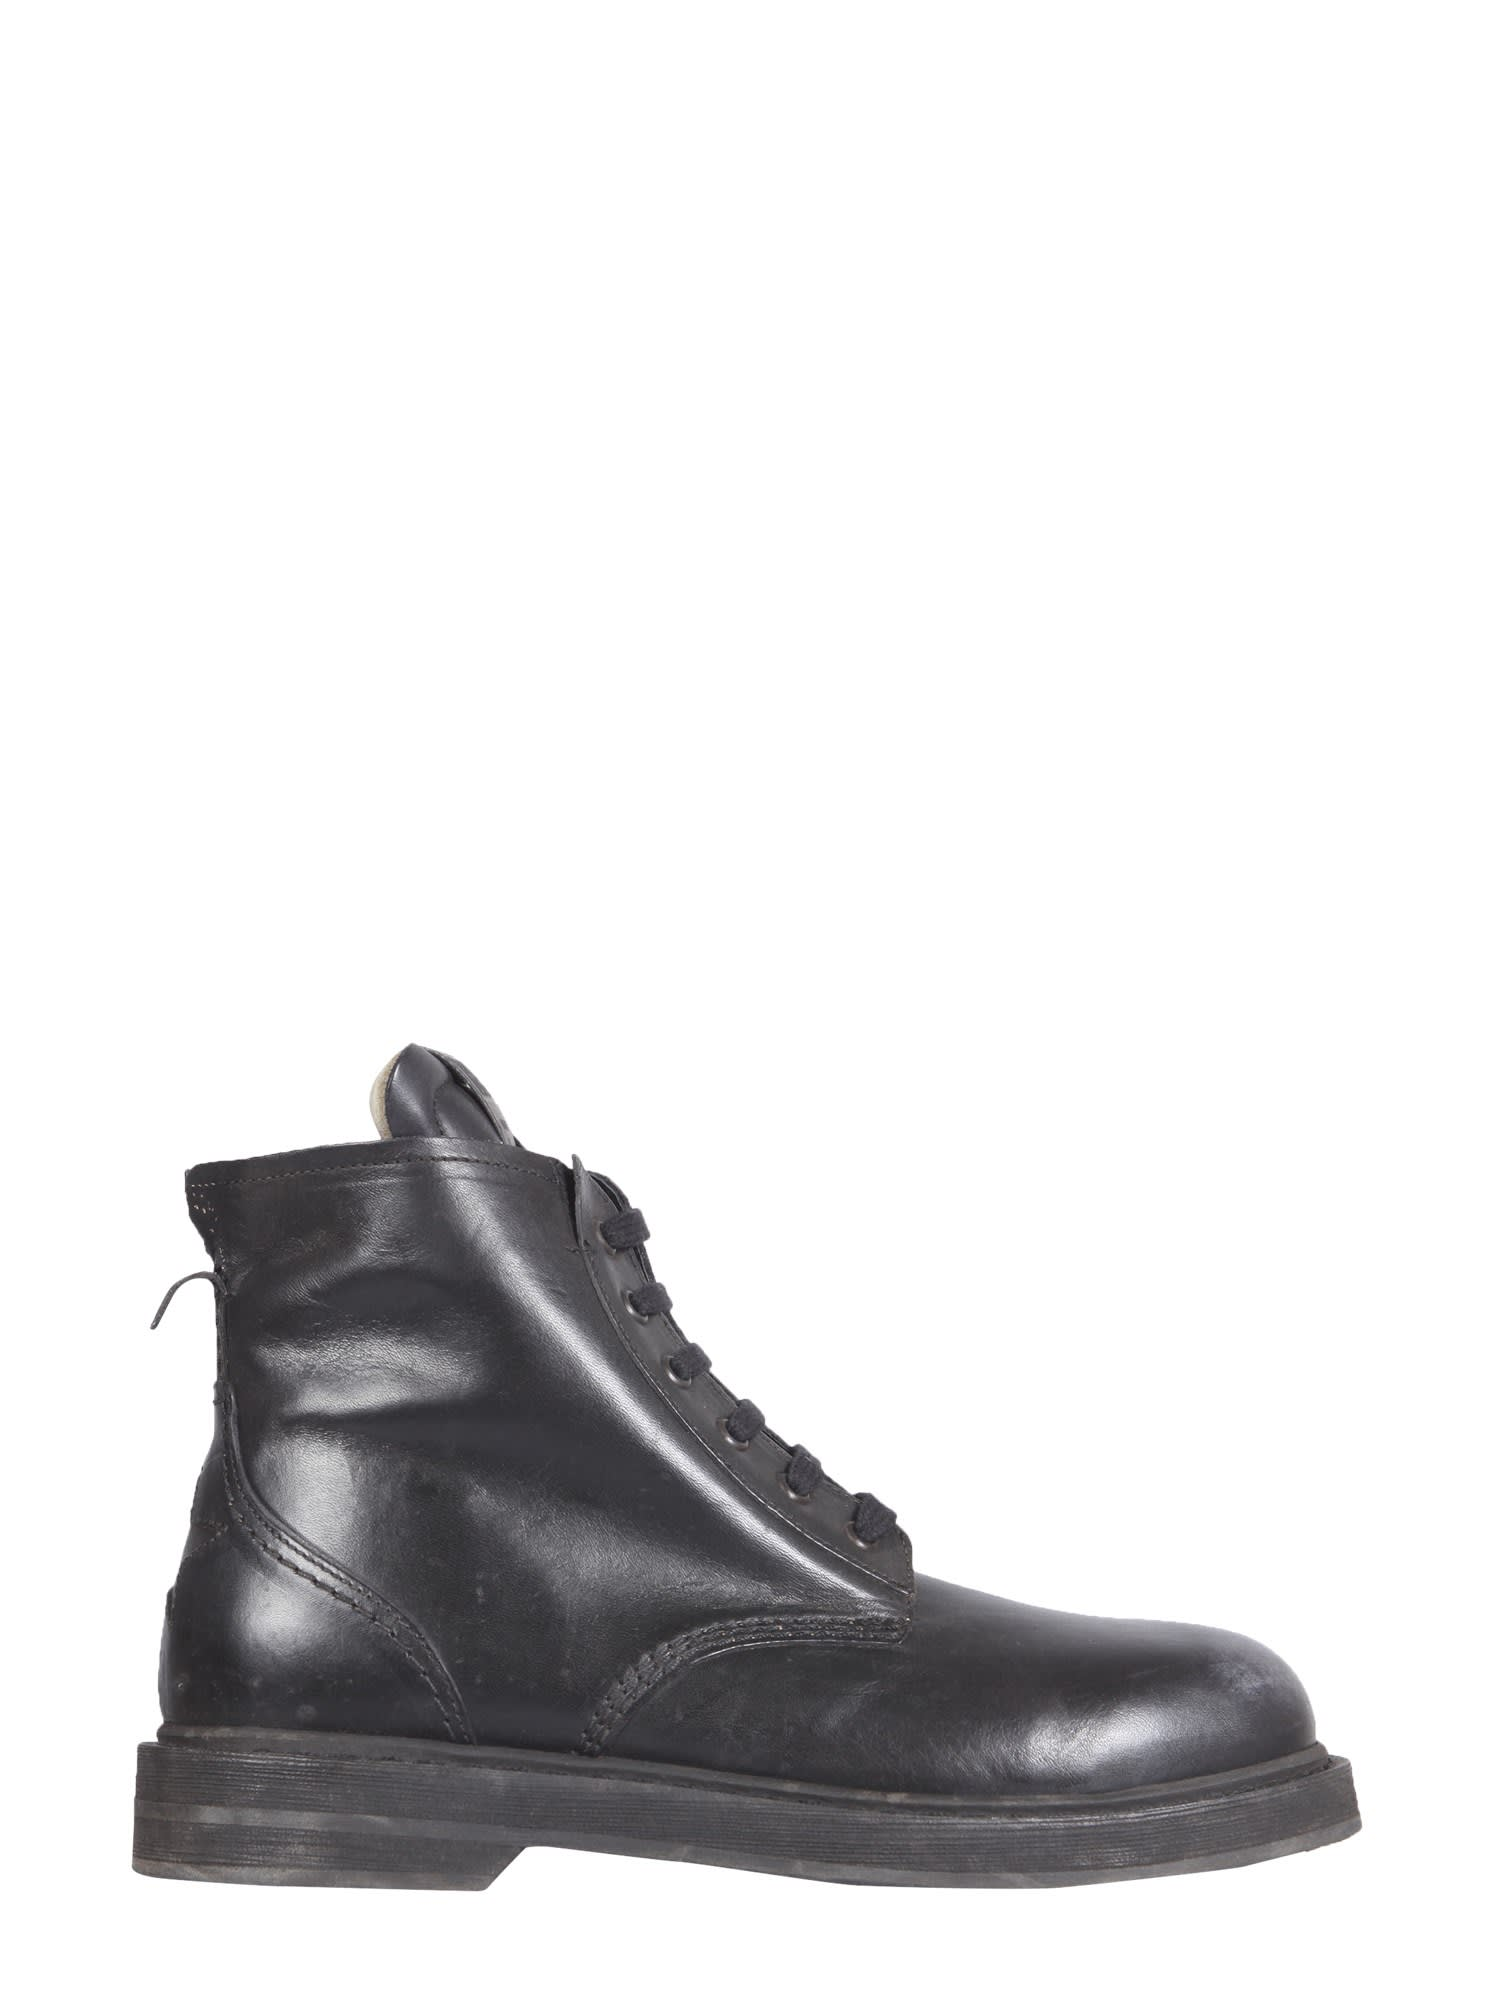 Buy Golden Goose Ele Boots online, shop Golden Goose shoes with free shipping